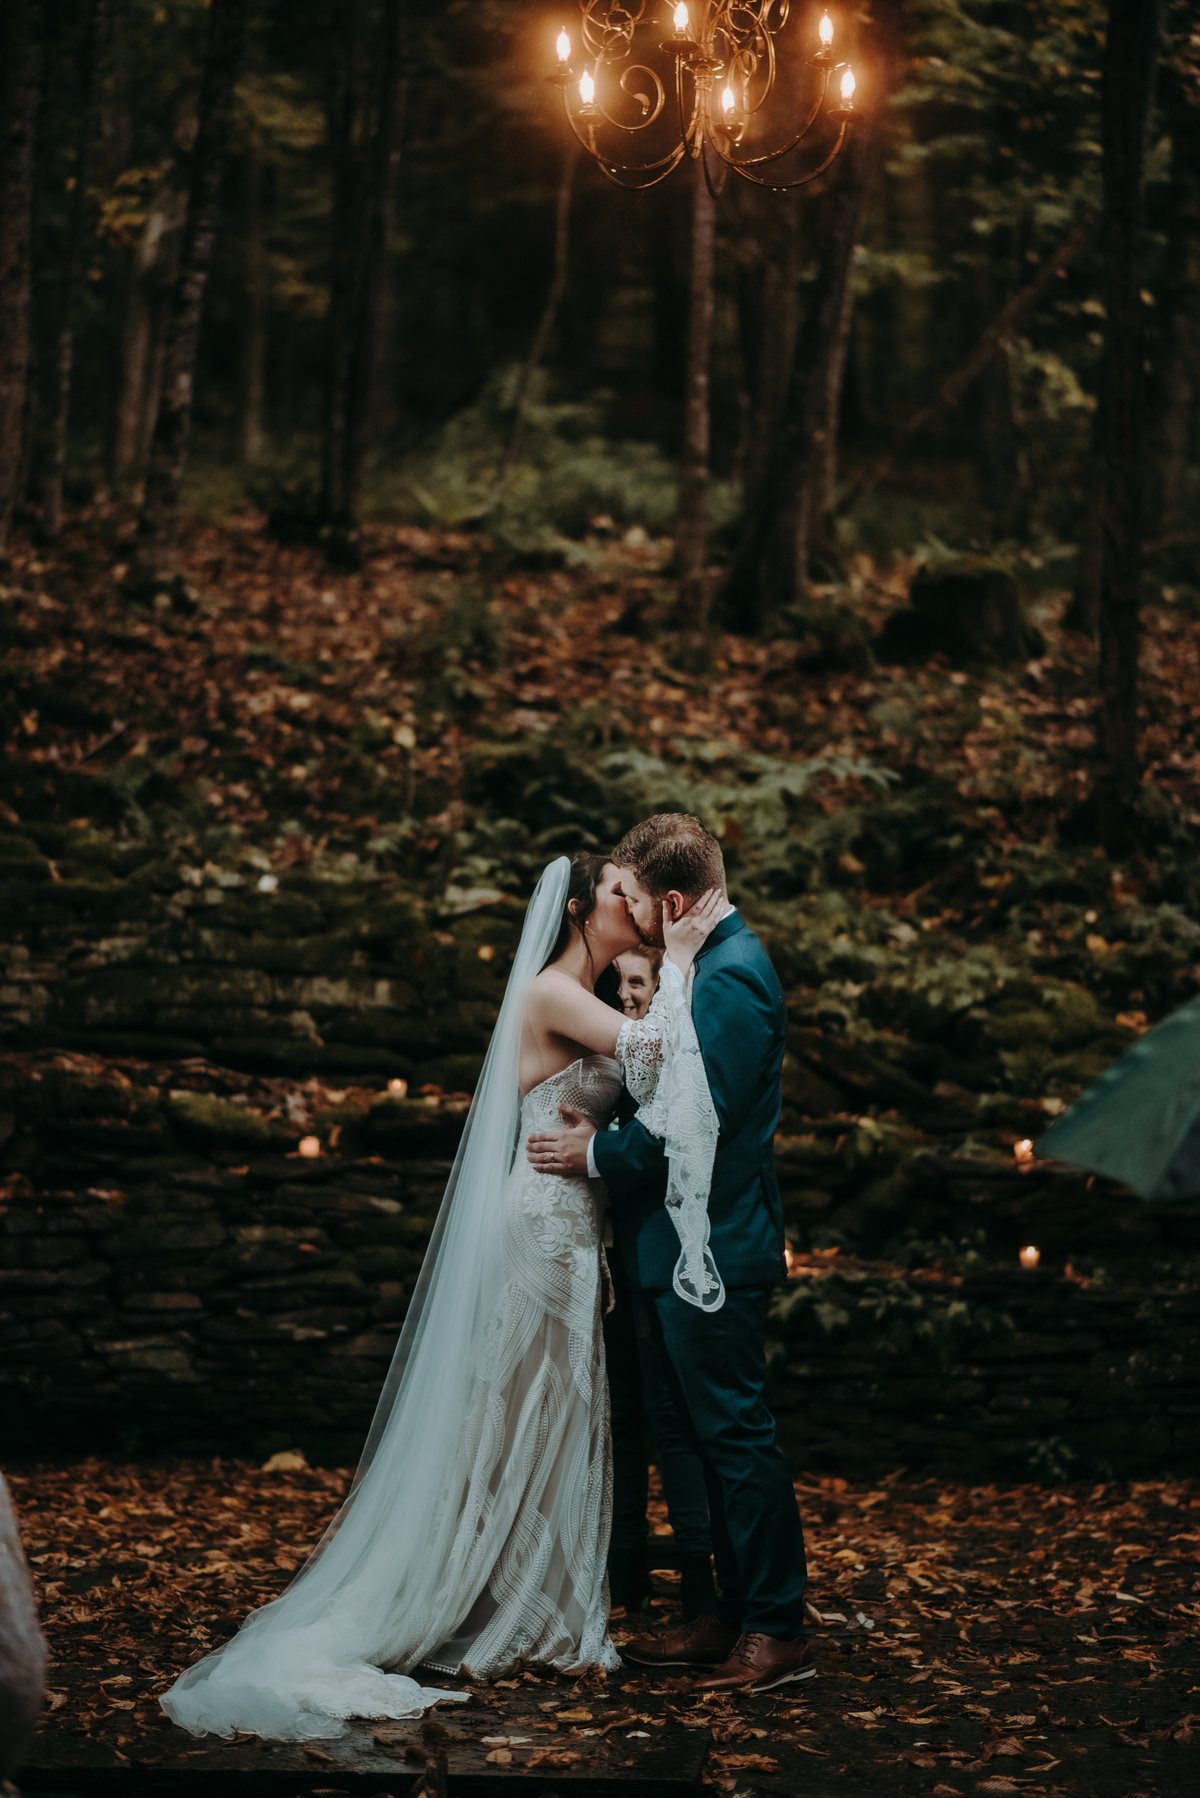 CatskillsJulietandEric2019WeddingPhotography (101 of 213)